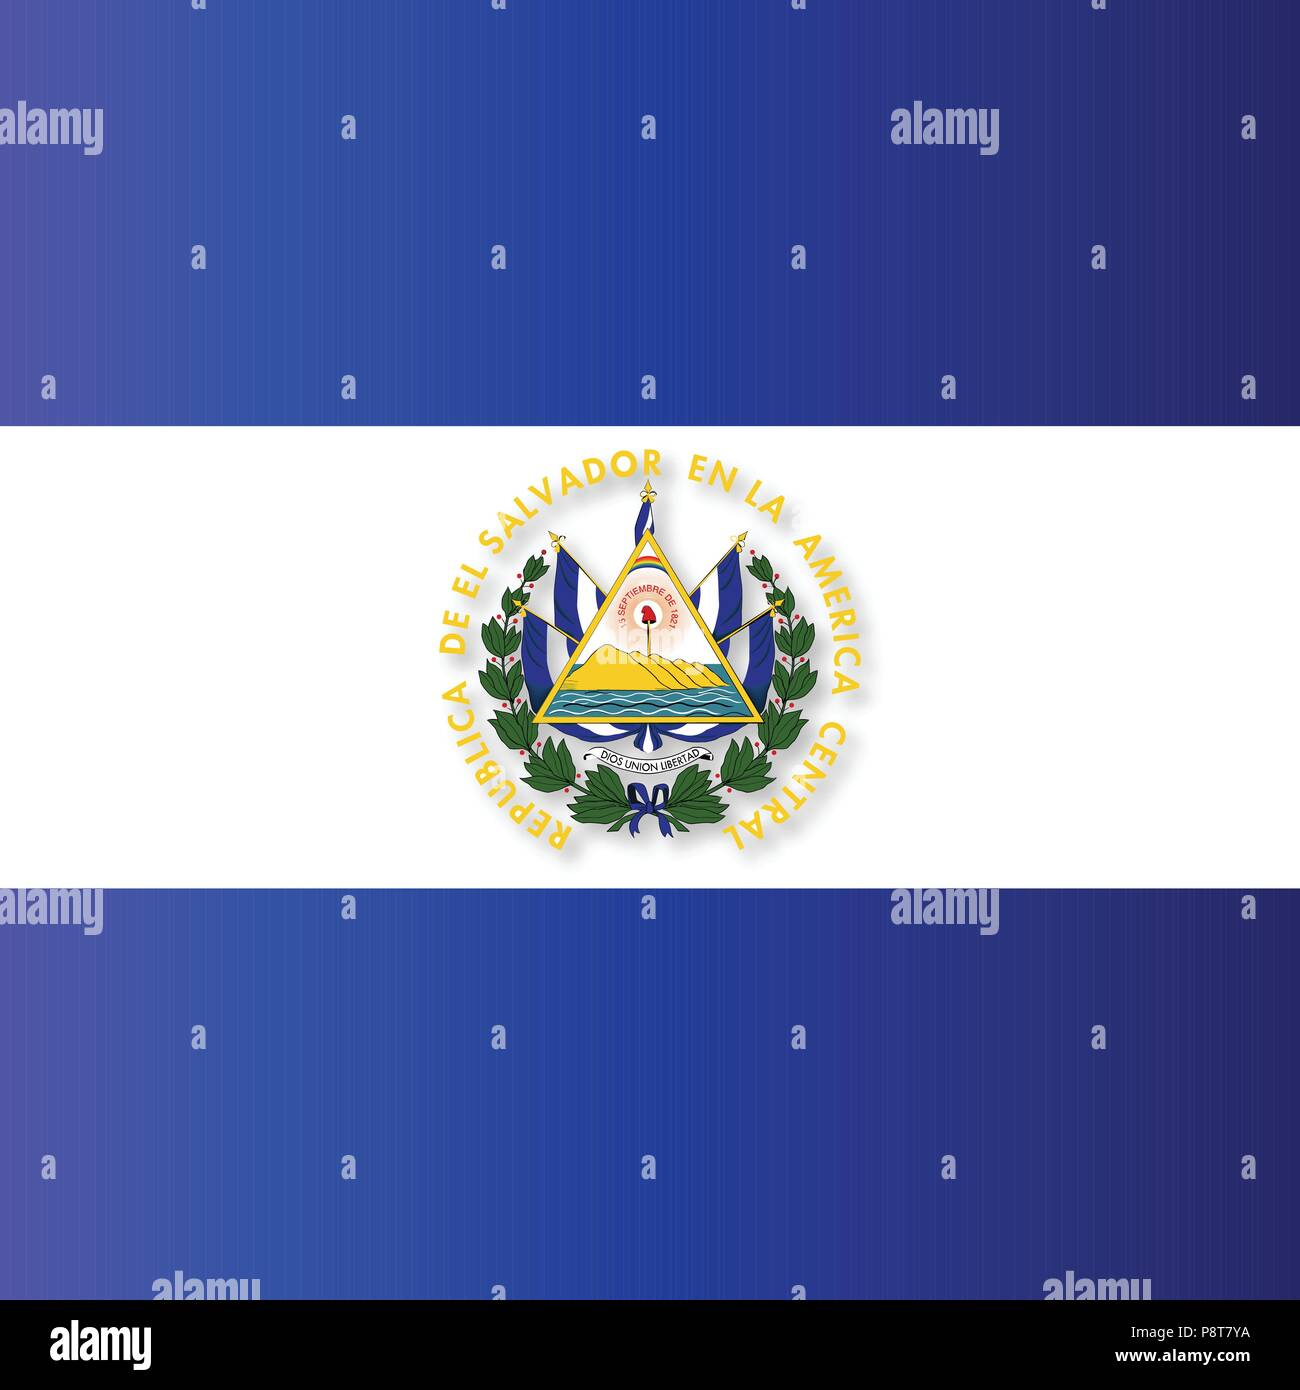 El Salvador Independence Day Greeting Card.. For web design and application interface, also useful for infographics. Vector illustration. - Stock Image